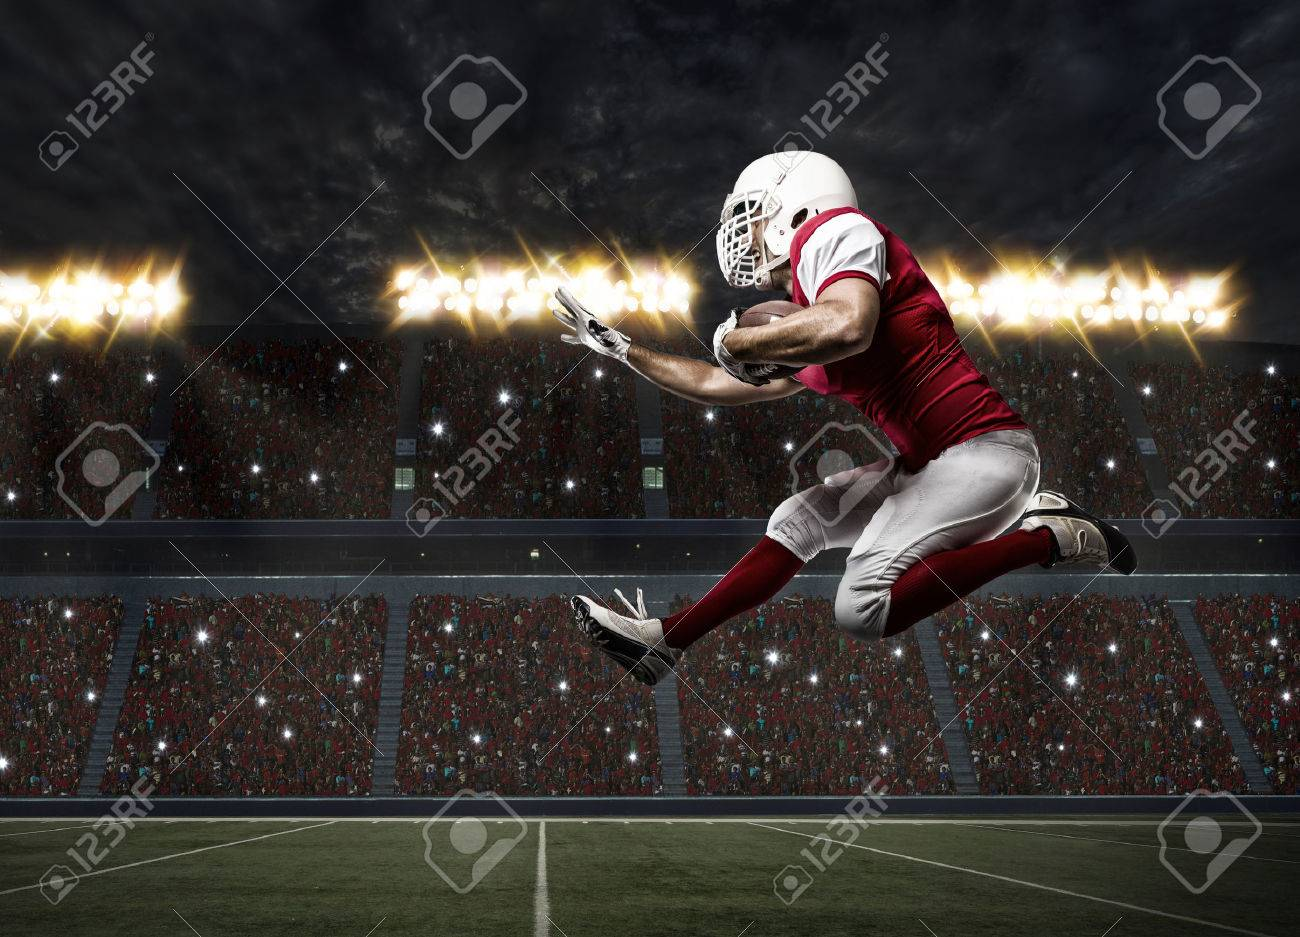 Football Player with a red uniform Running on a stadium. - 35218328